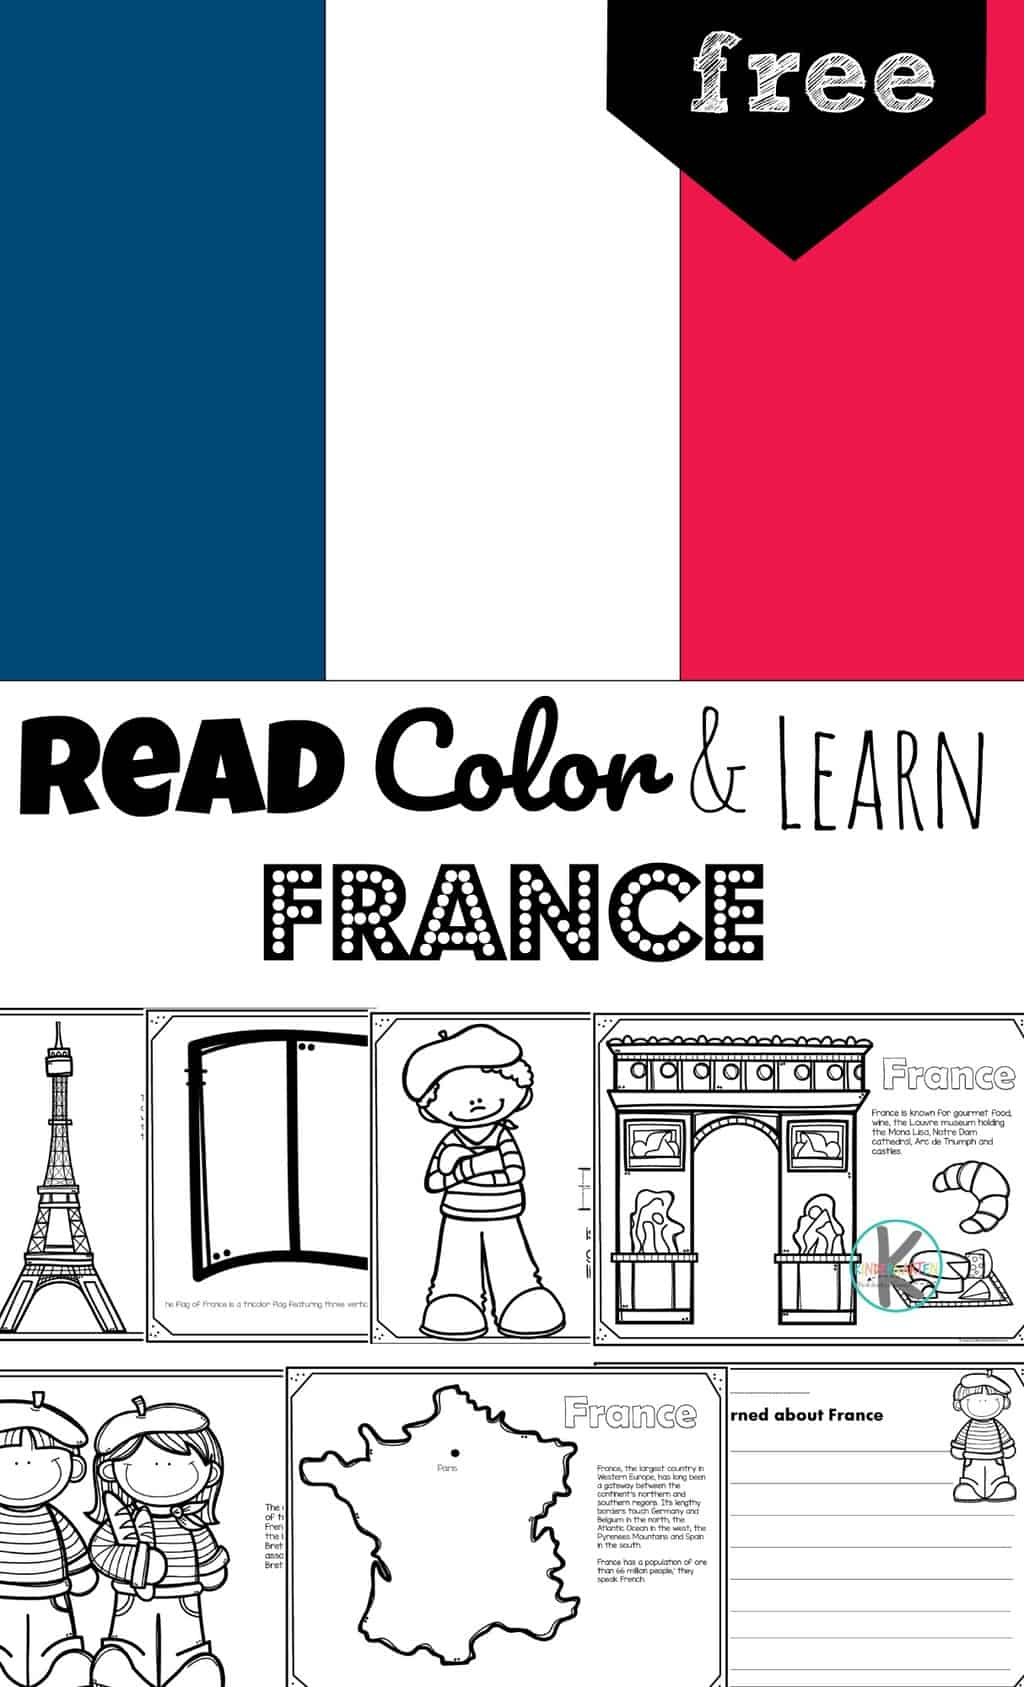 Free France Coloring Pages To Read Color And Learn